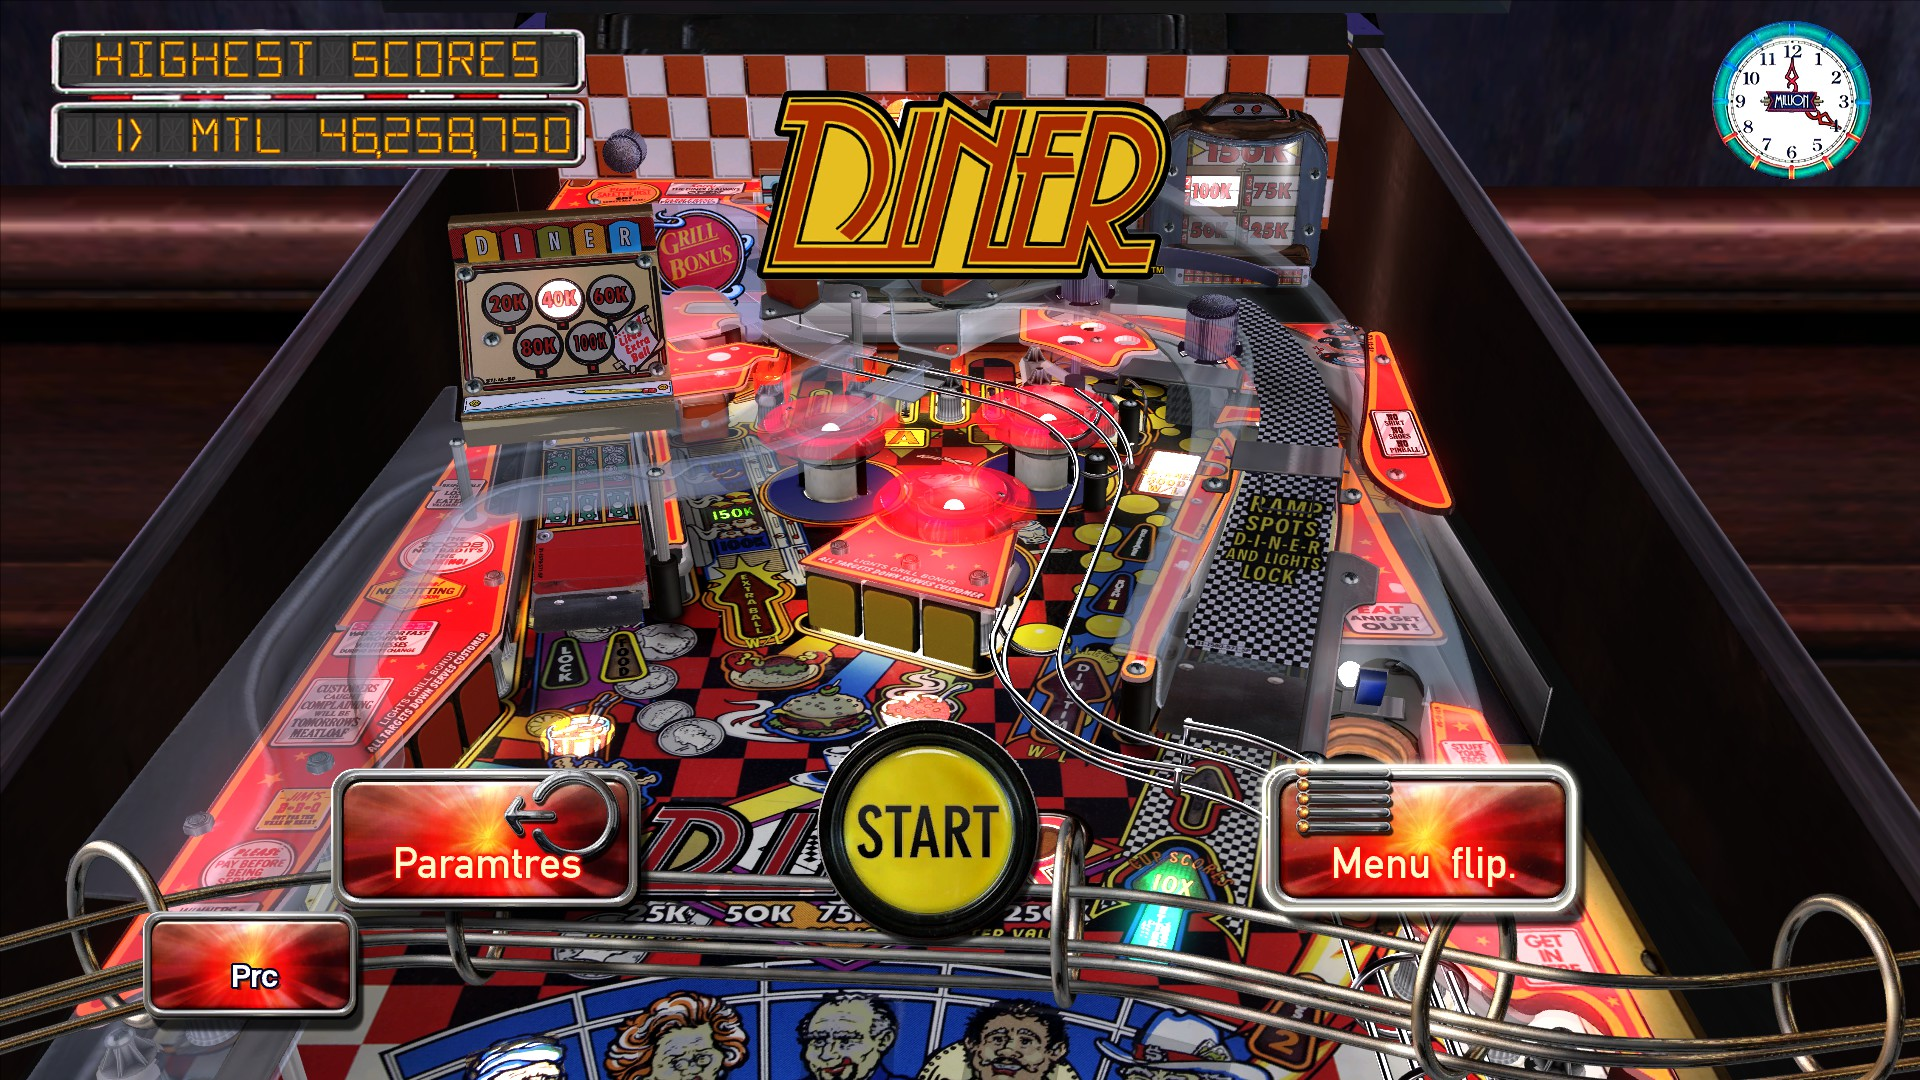 Mantalow: Pinball Arcade: Diner (PC) 46,258,750 points on 2015-12-16 10:06:02